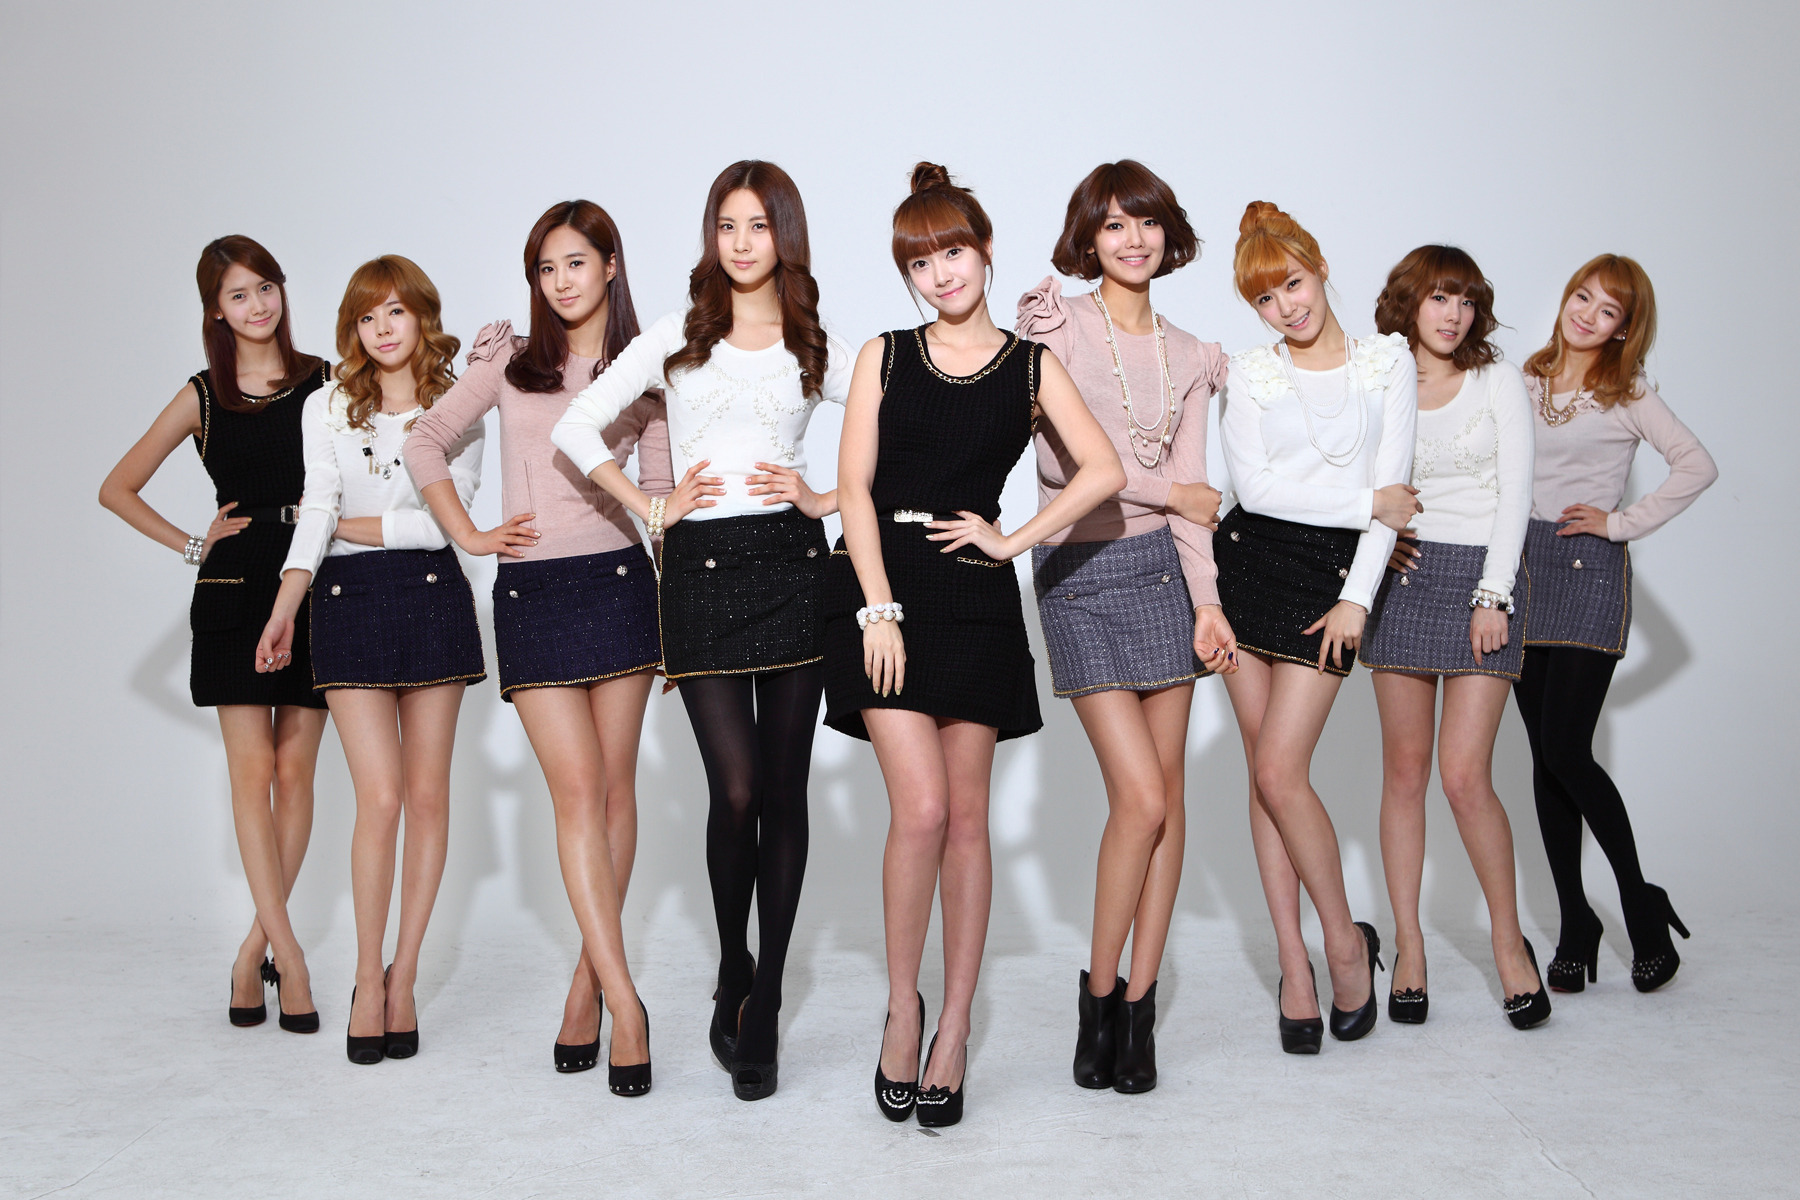 http://images4.fanpop.com/image/photos/16700000/SNSD-girls-generation-snsd-16702804-1800-1200.jpg